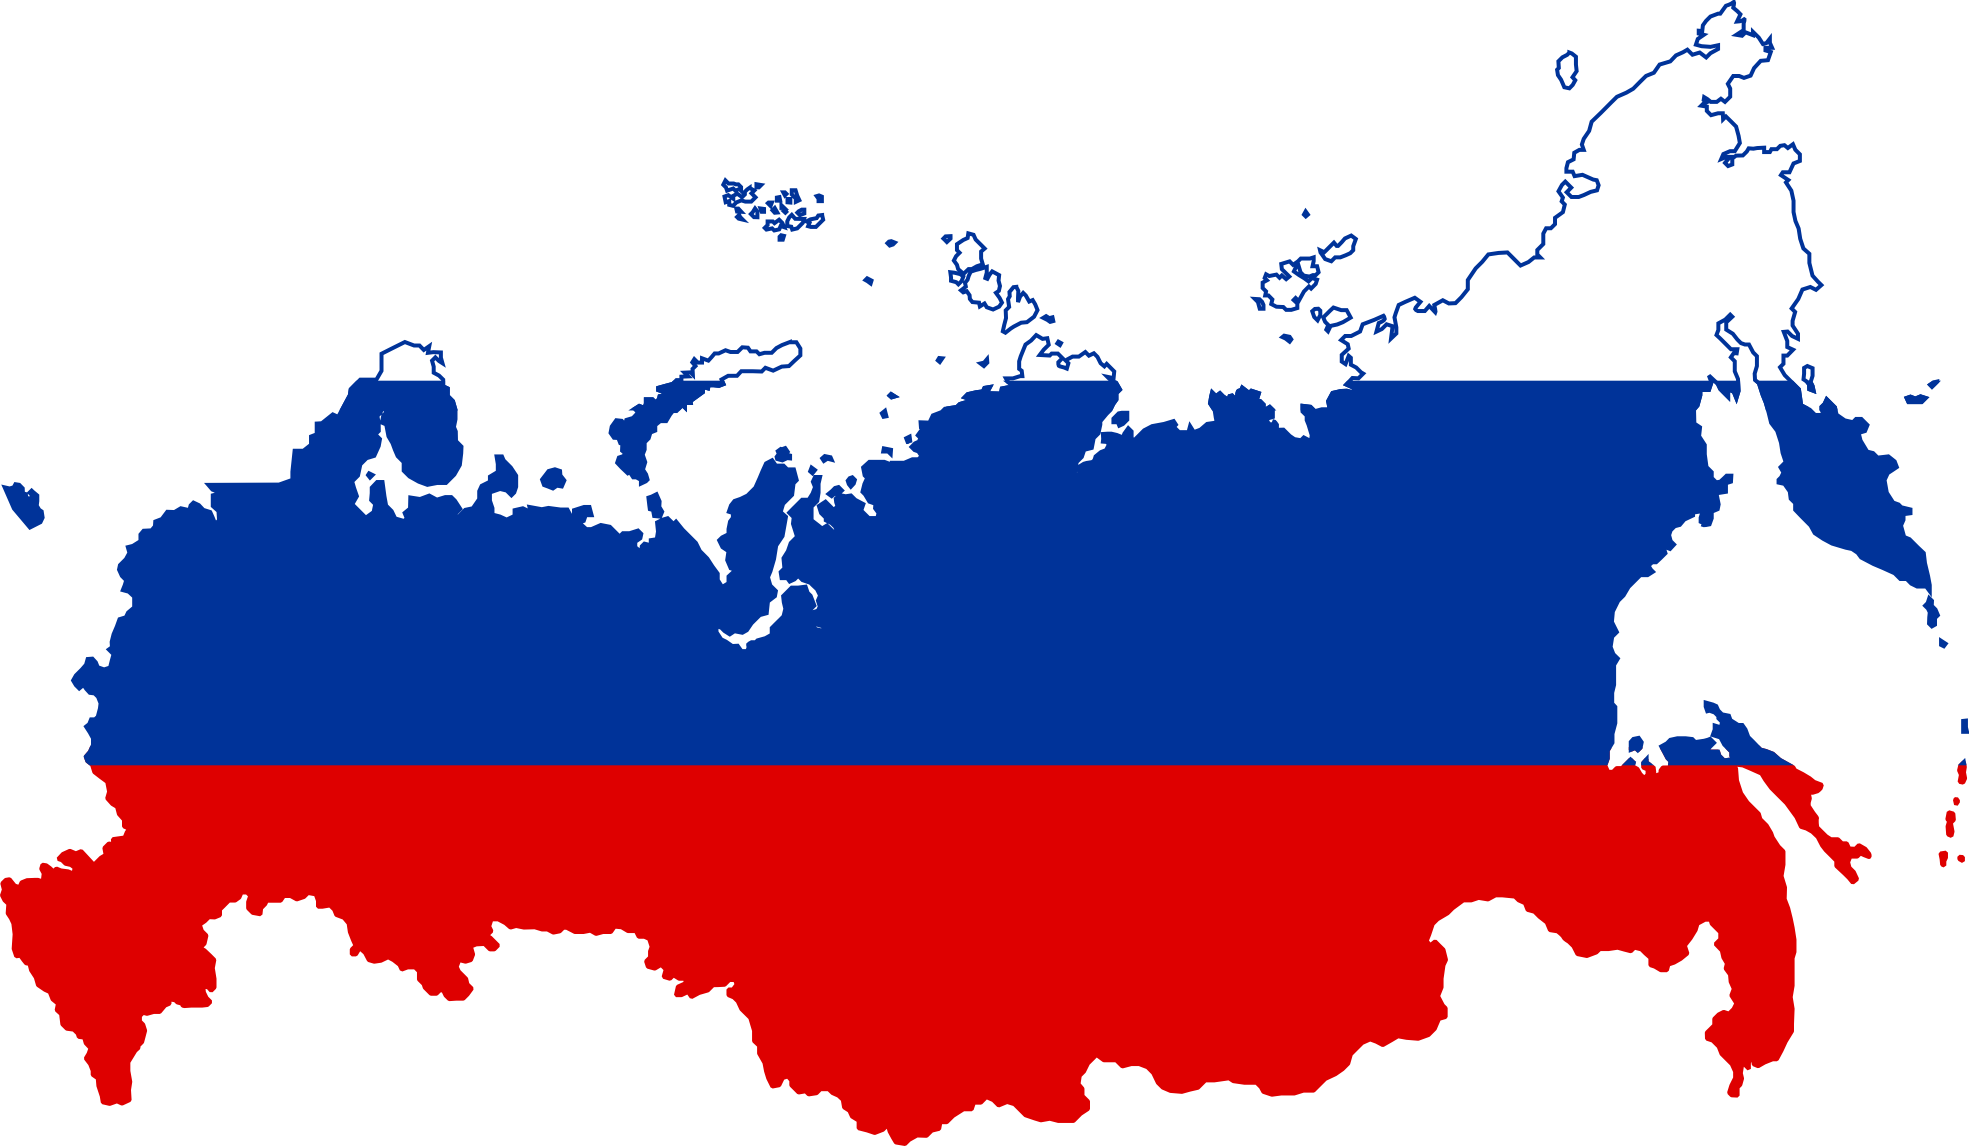 Russia Map 2011 Map of Russia Flags 2011